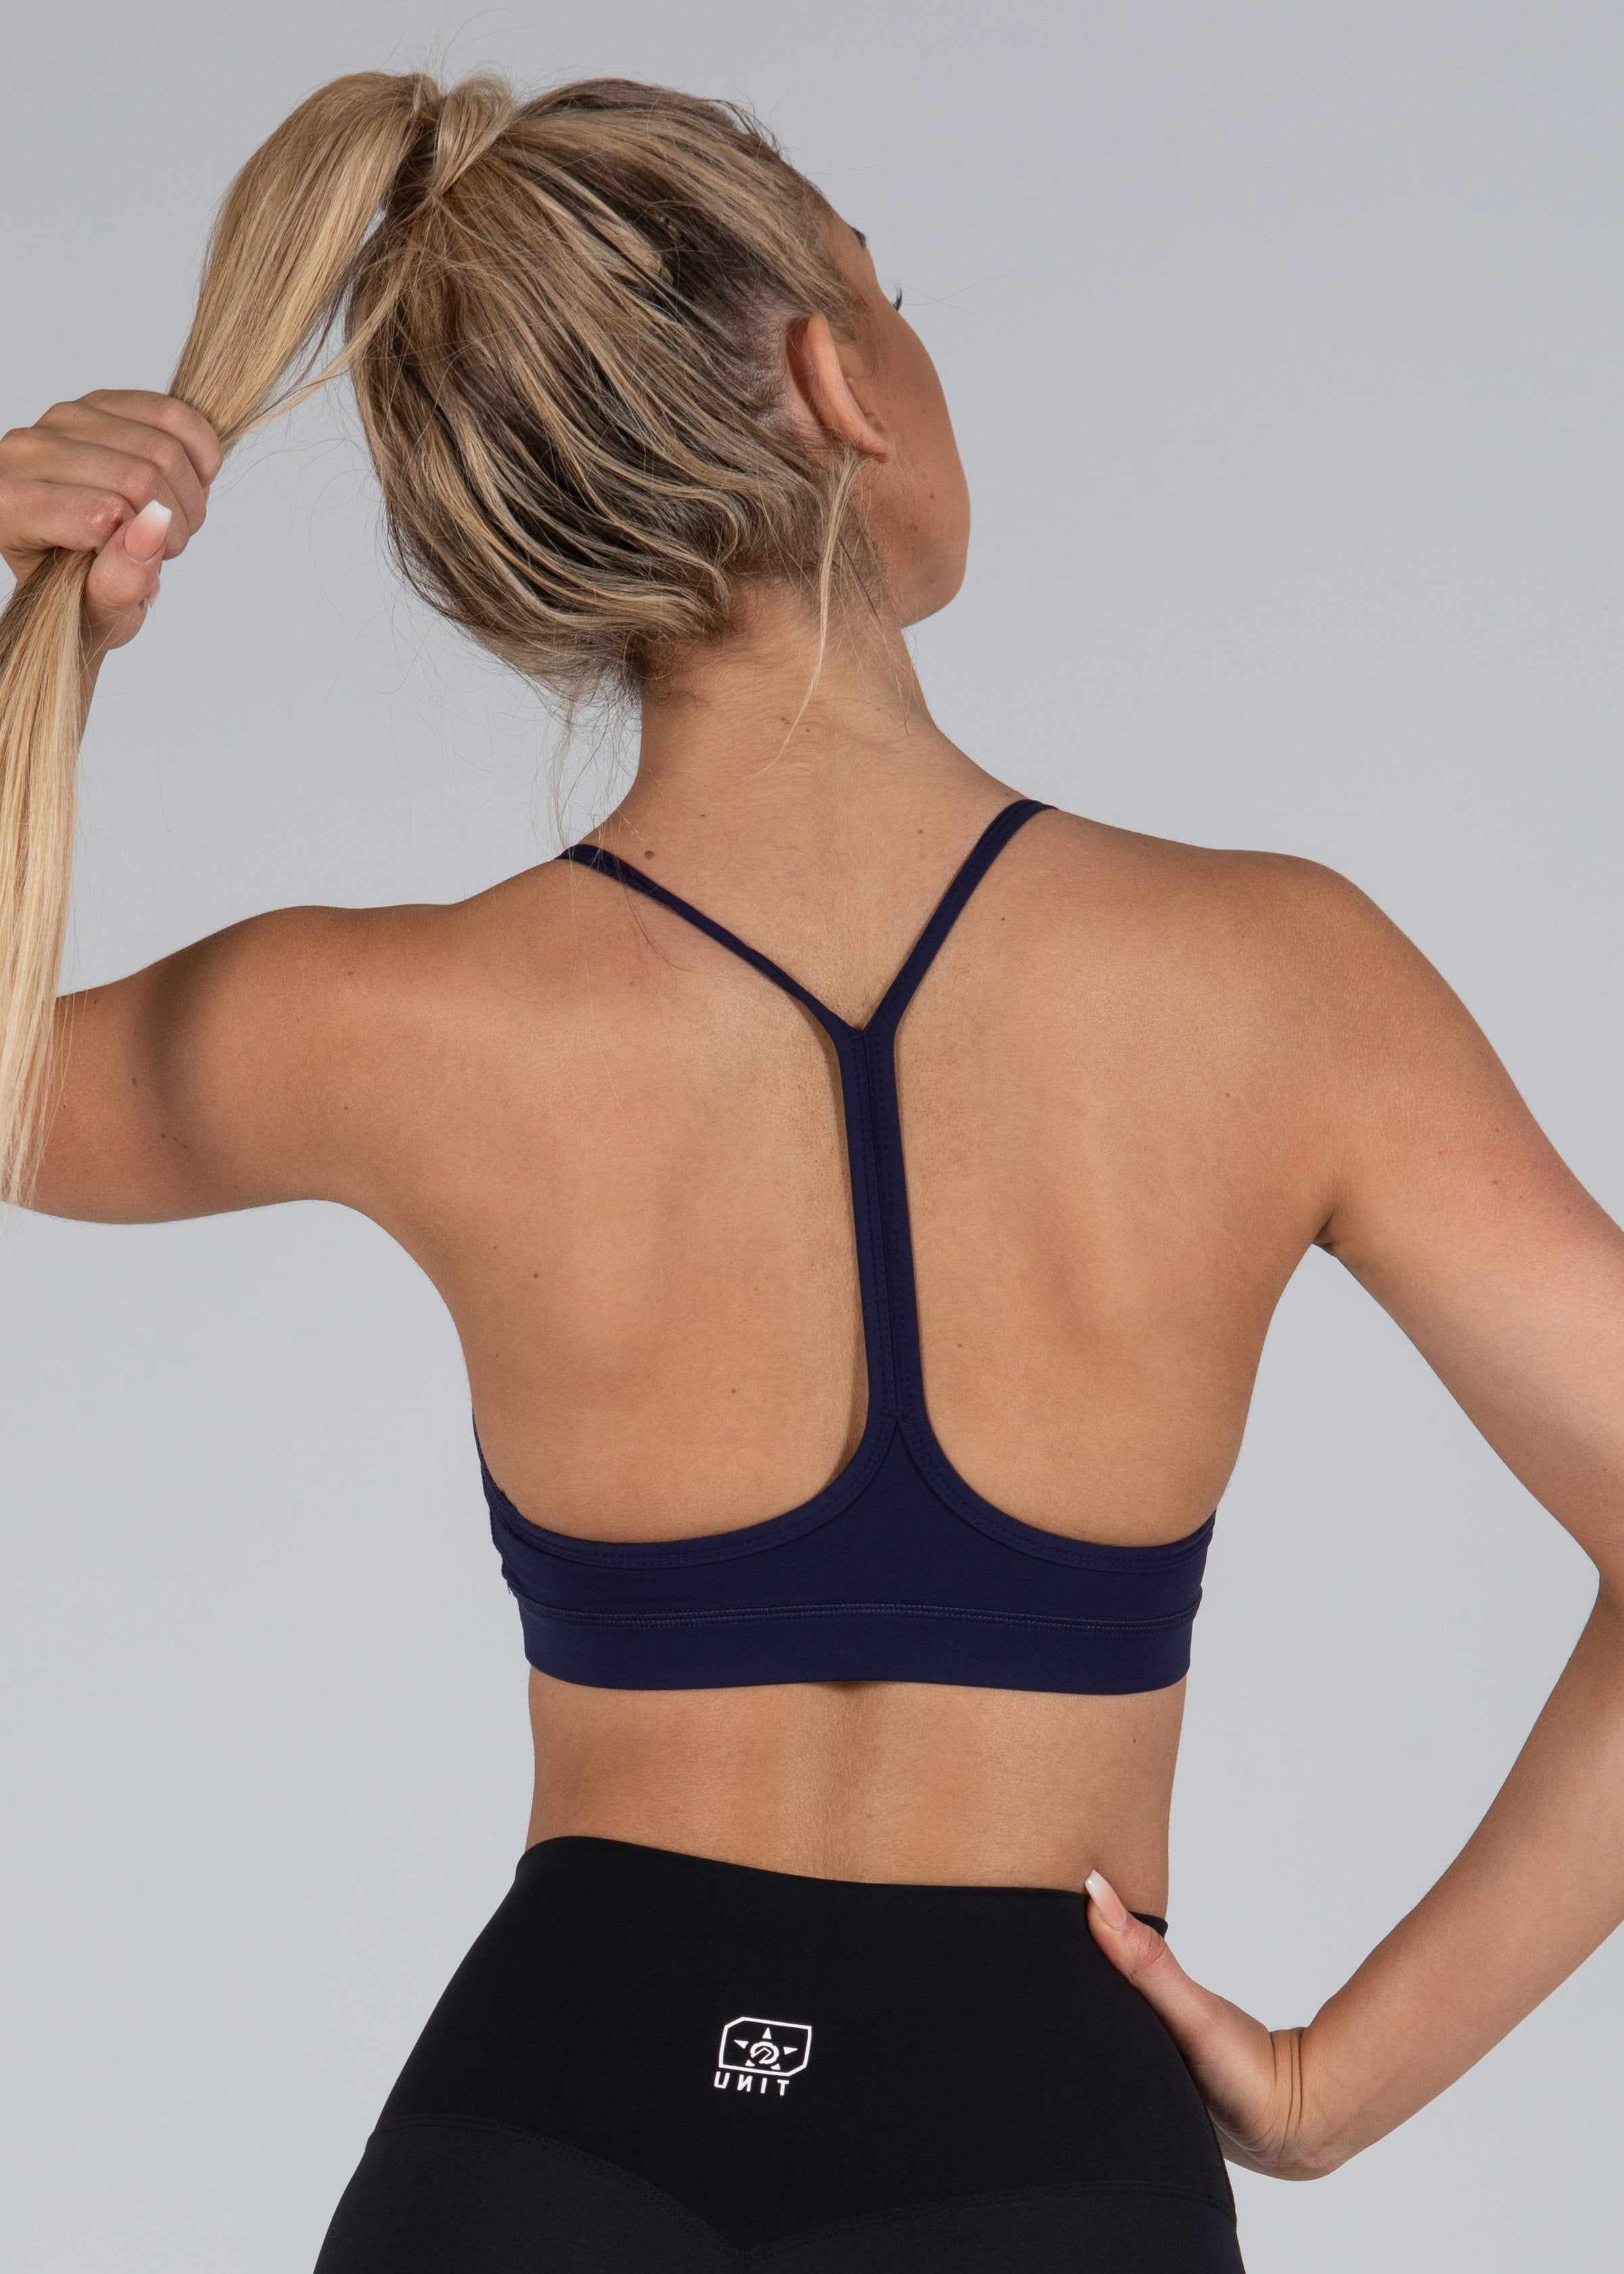 Tempo Strap Ladies Sports Bra